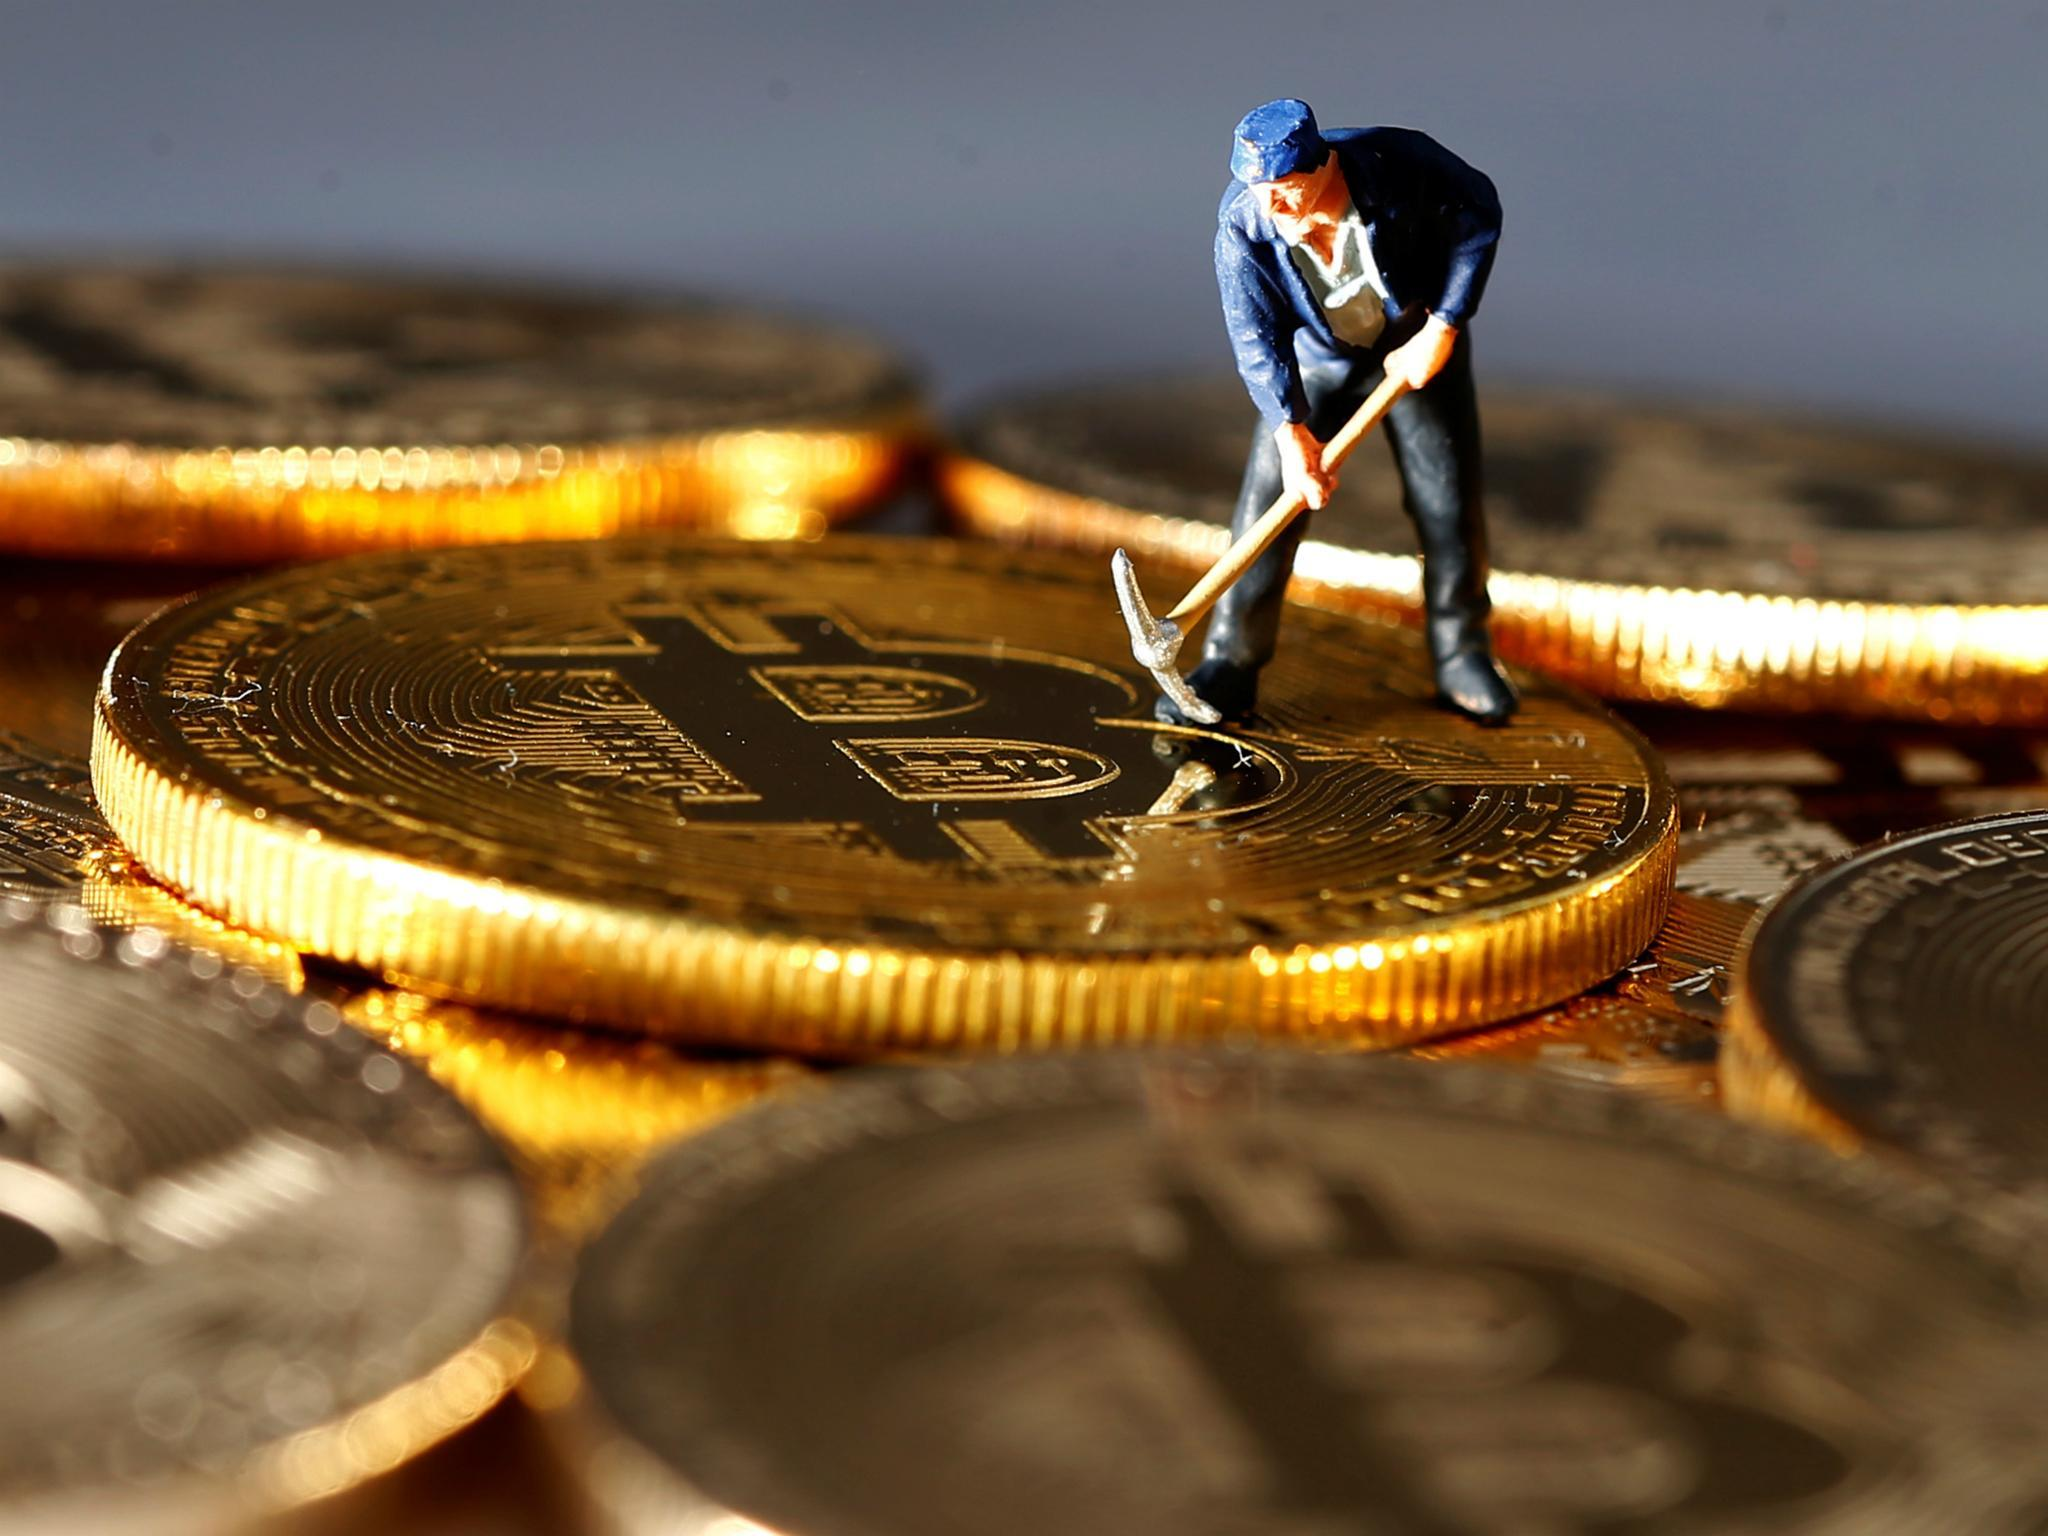 North Korea is stealing bitcoin and the threat to cryptocurrency investors is growing, experts warn